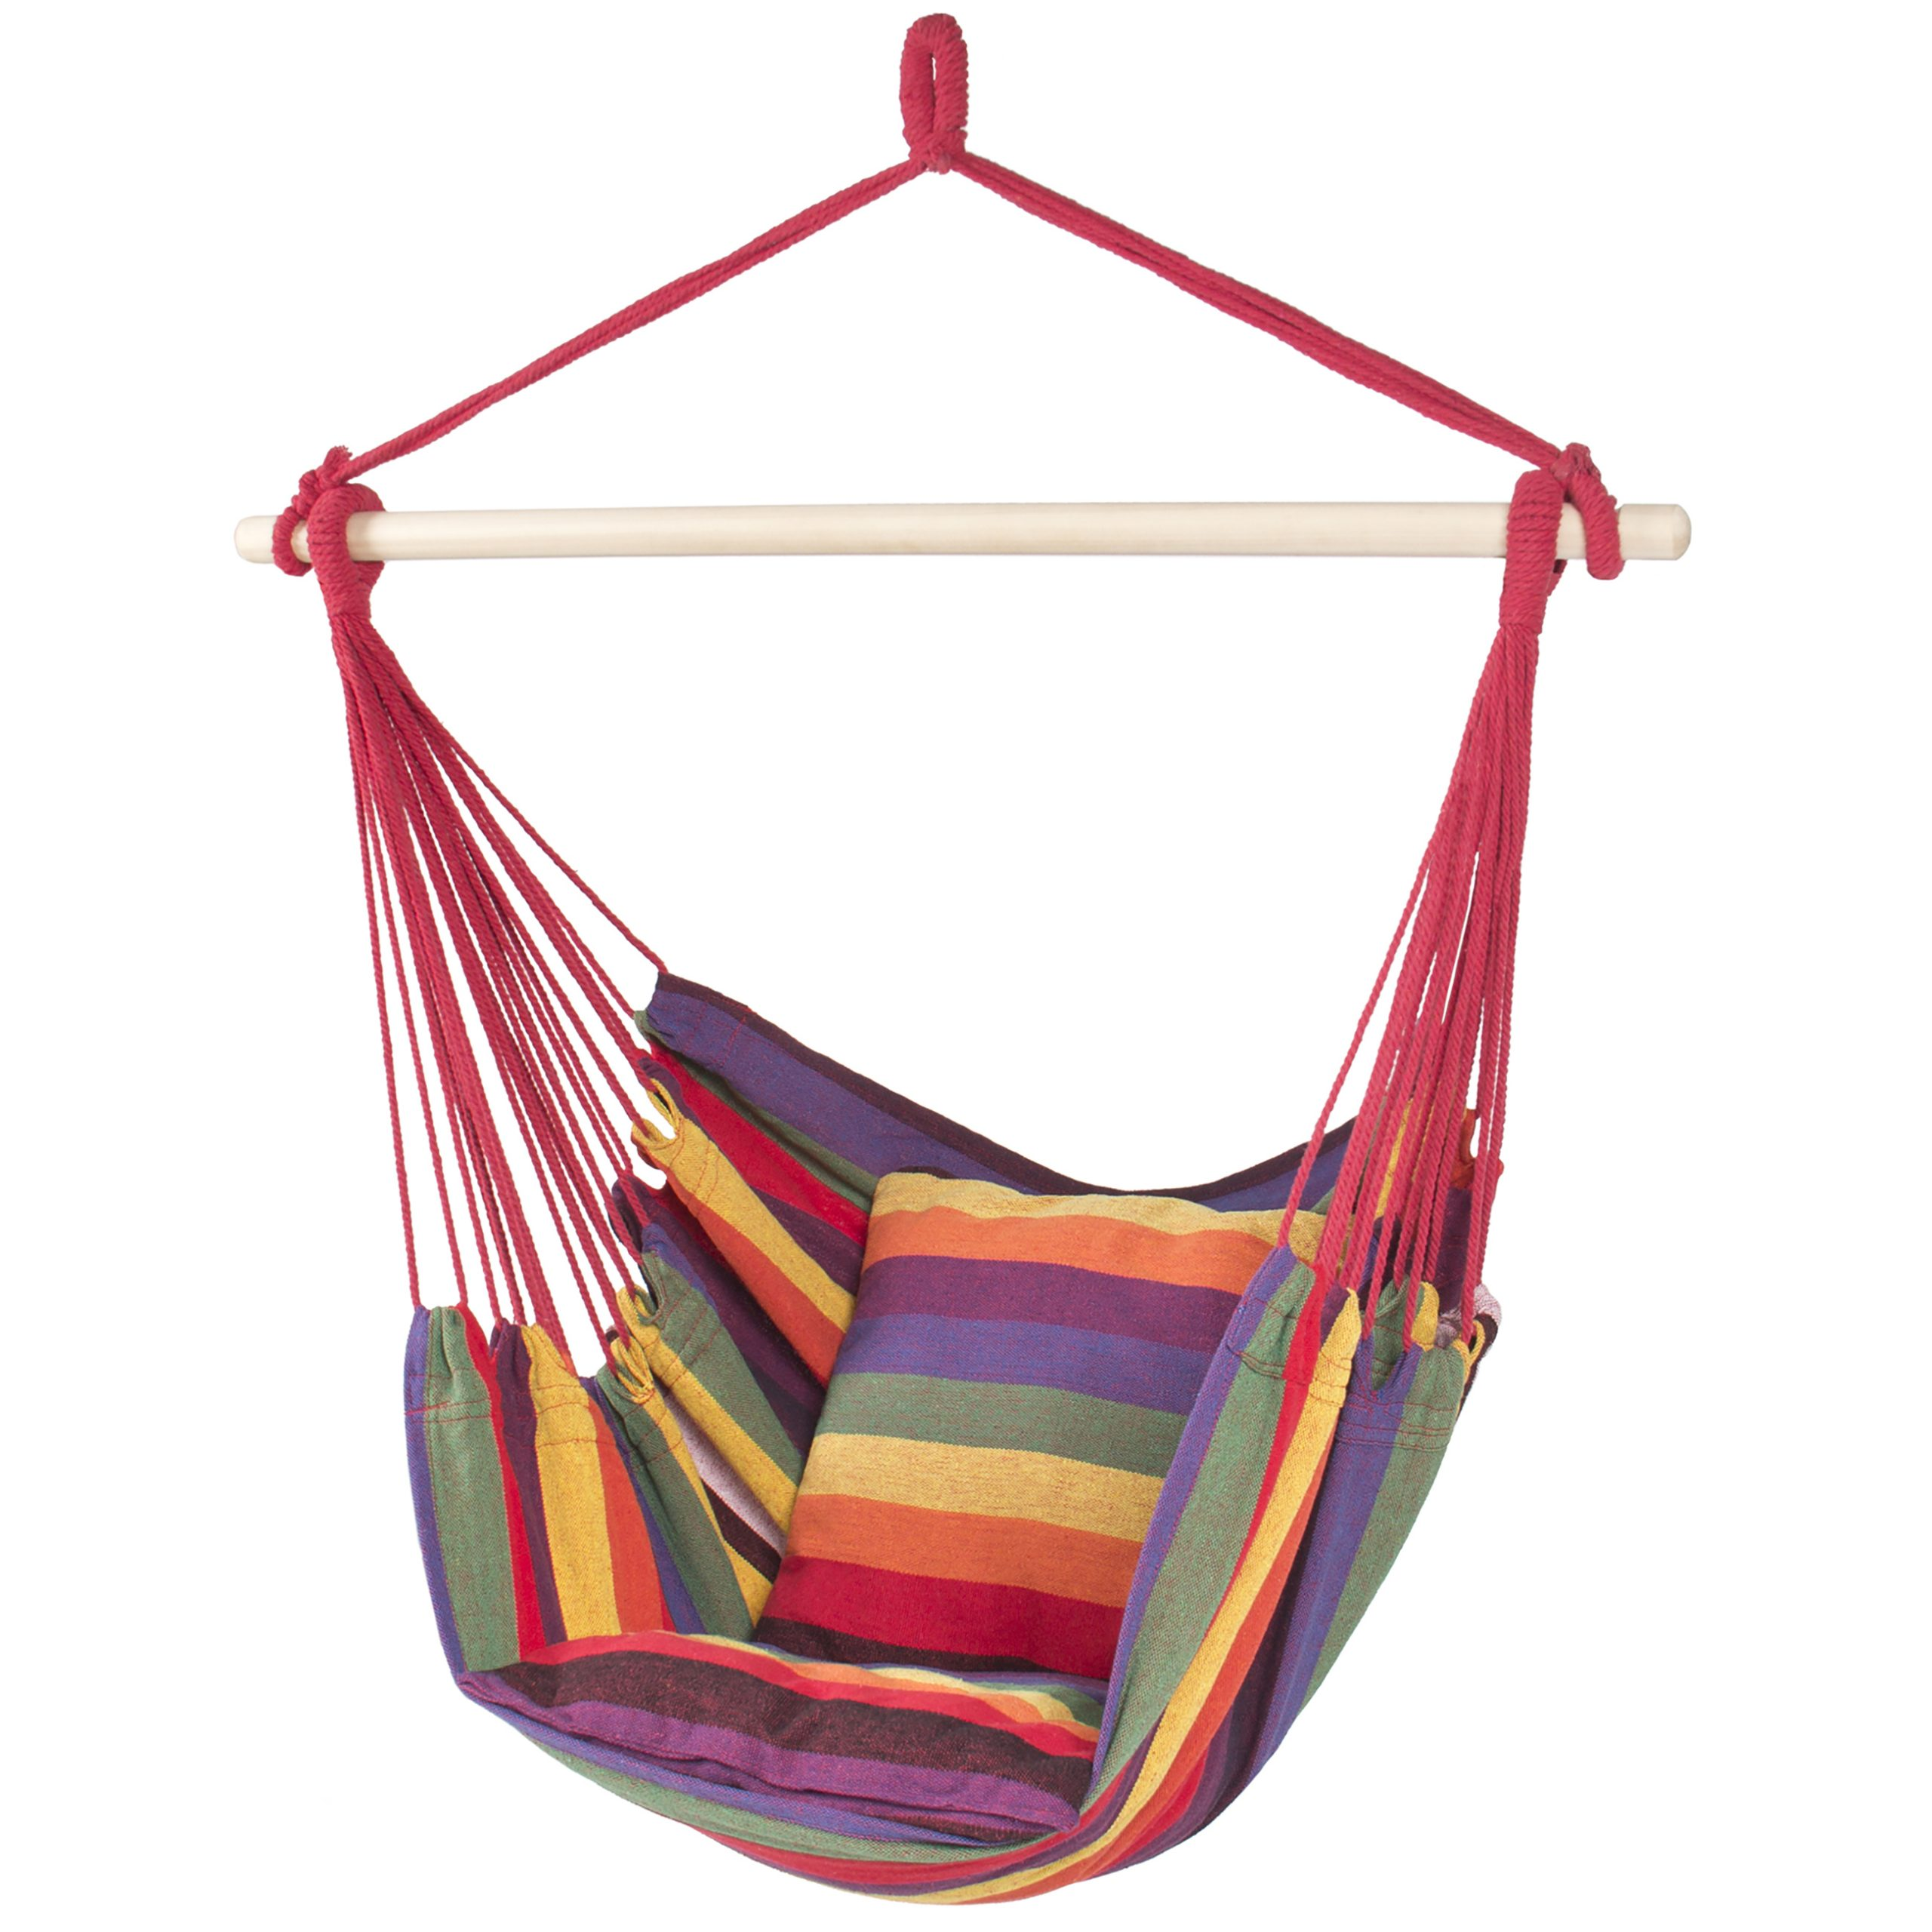 Best Choice Products Portable Hanging Cotton Hammock Rope Chair Swing, Red Stripe – Walmart Regarding Cotton Porch Swings (View 11 of 25)